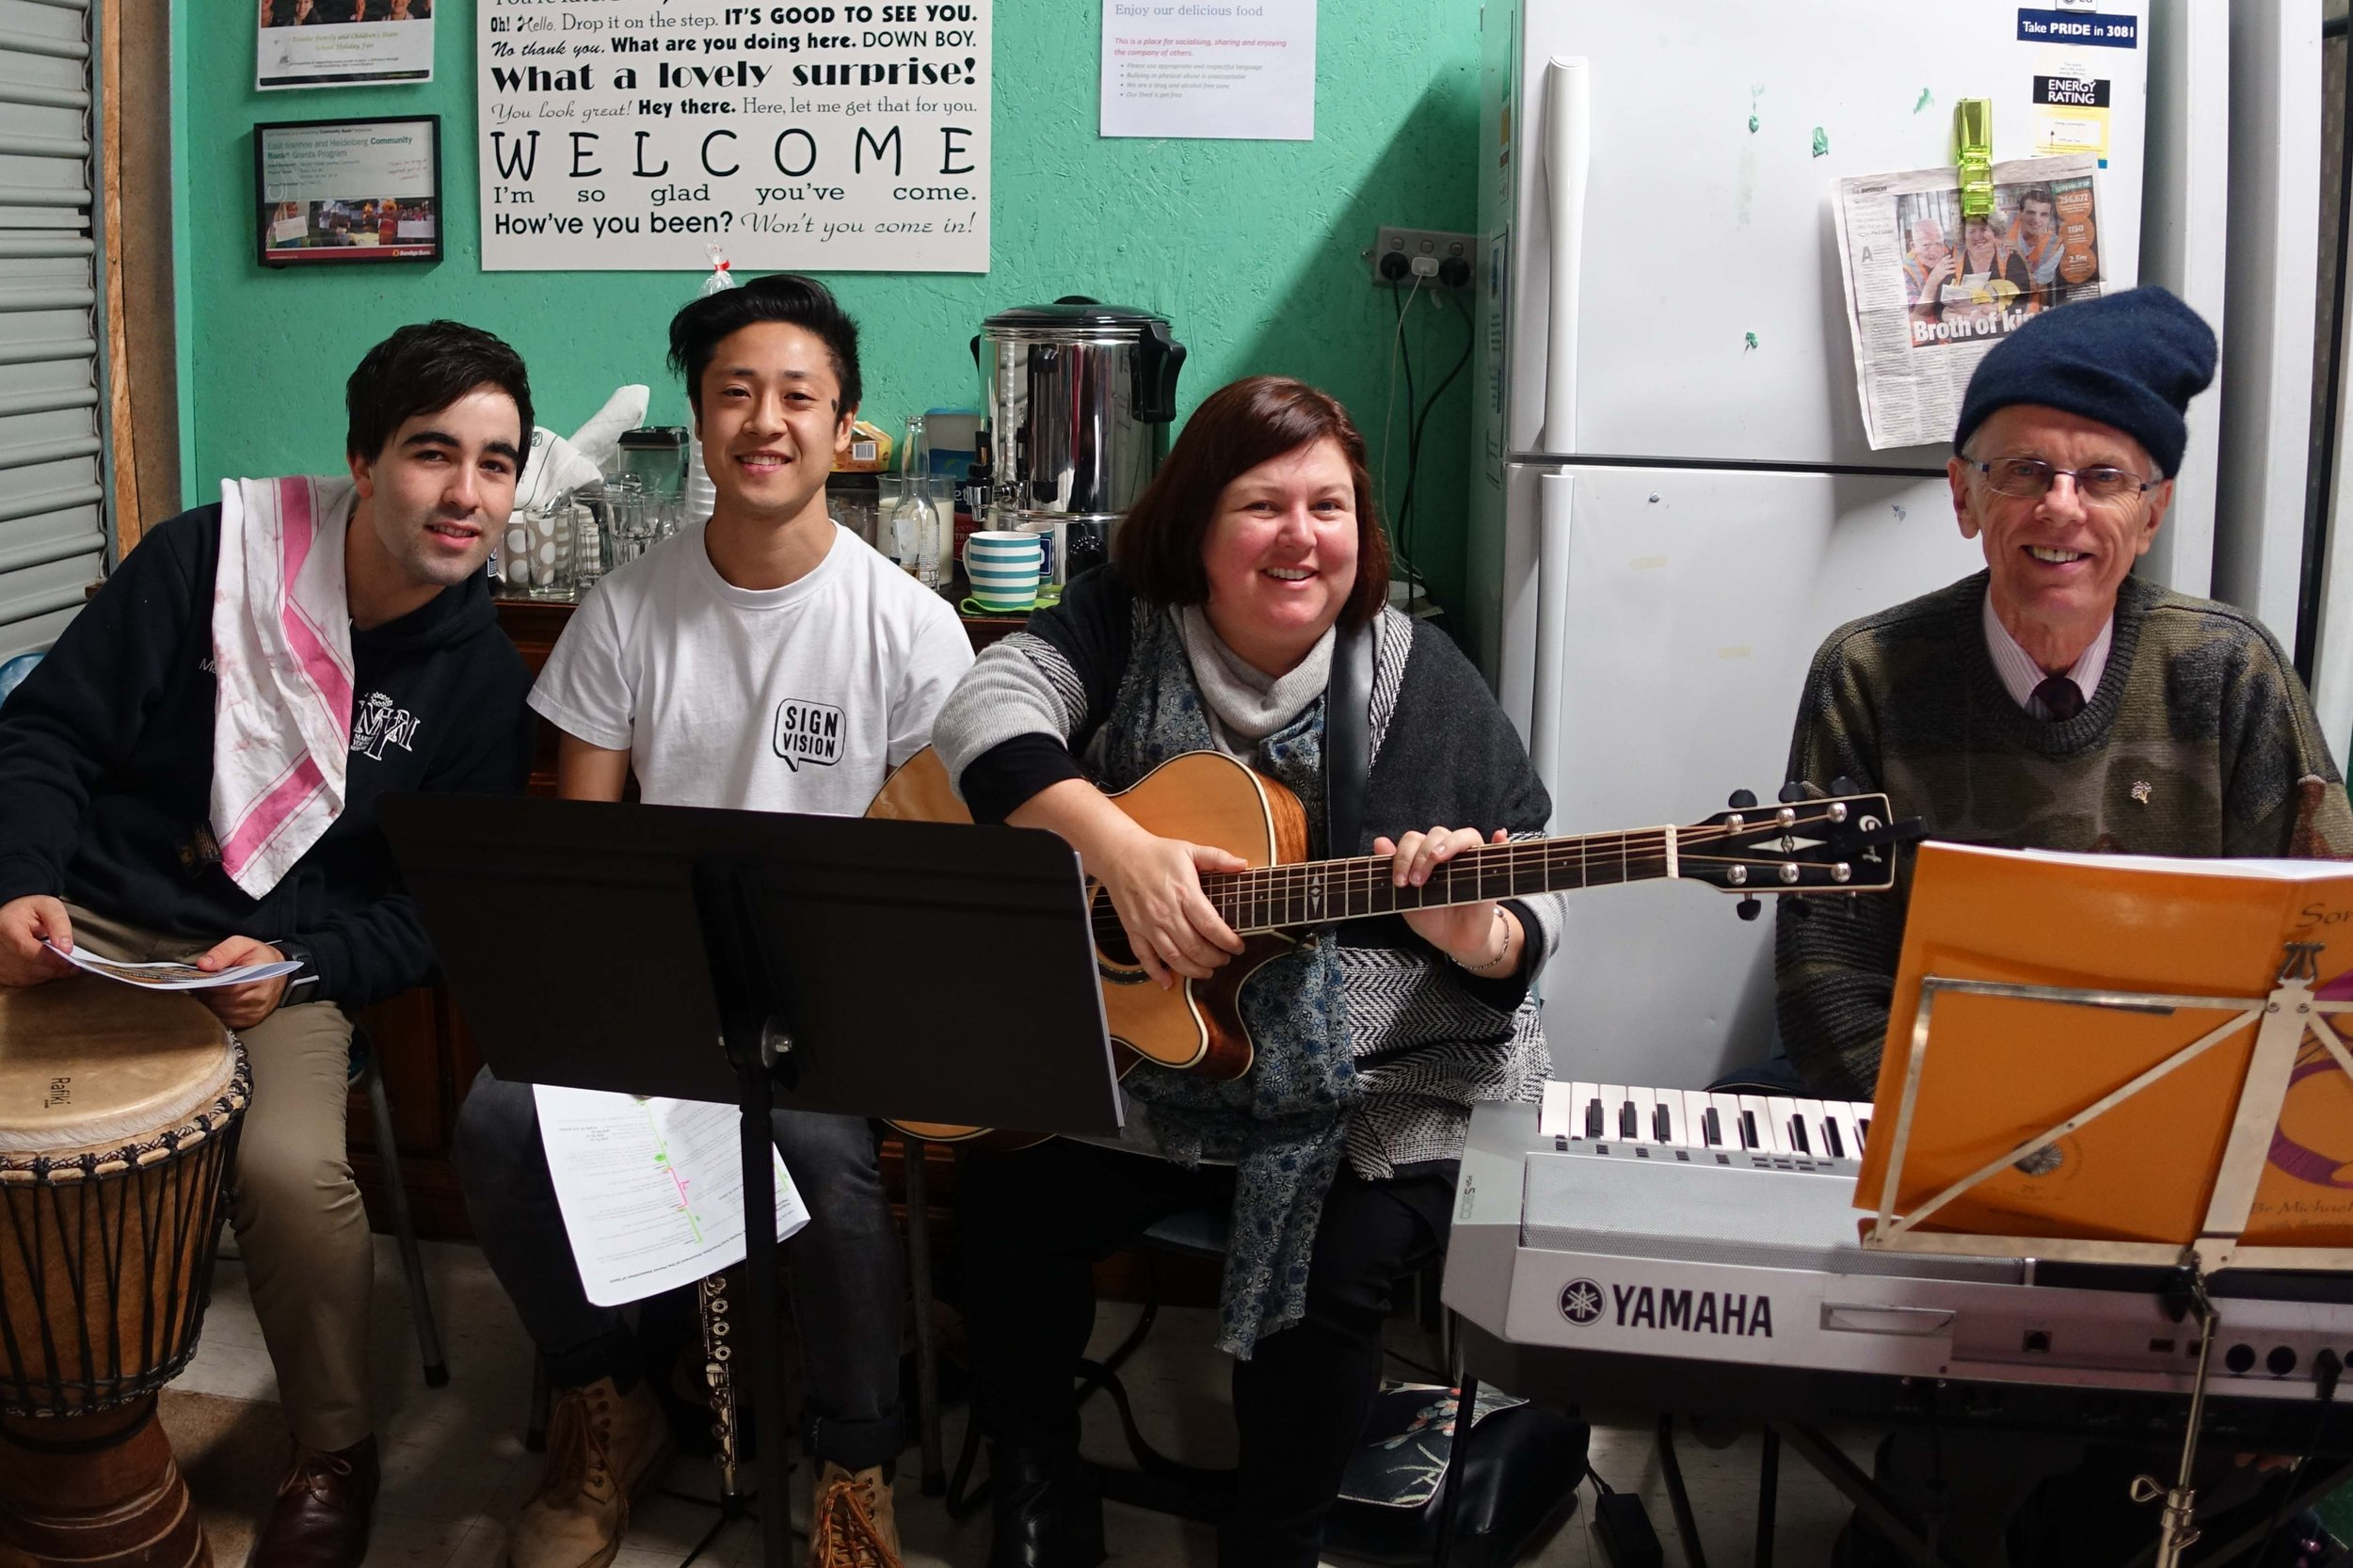 The Band - Jack Stammers - Dan Nguyen - Fiona Dyball - Br. Michael Herry